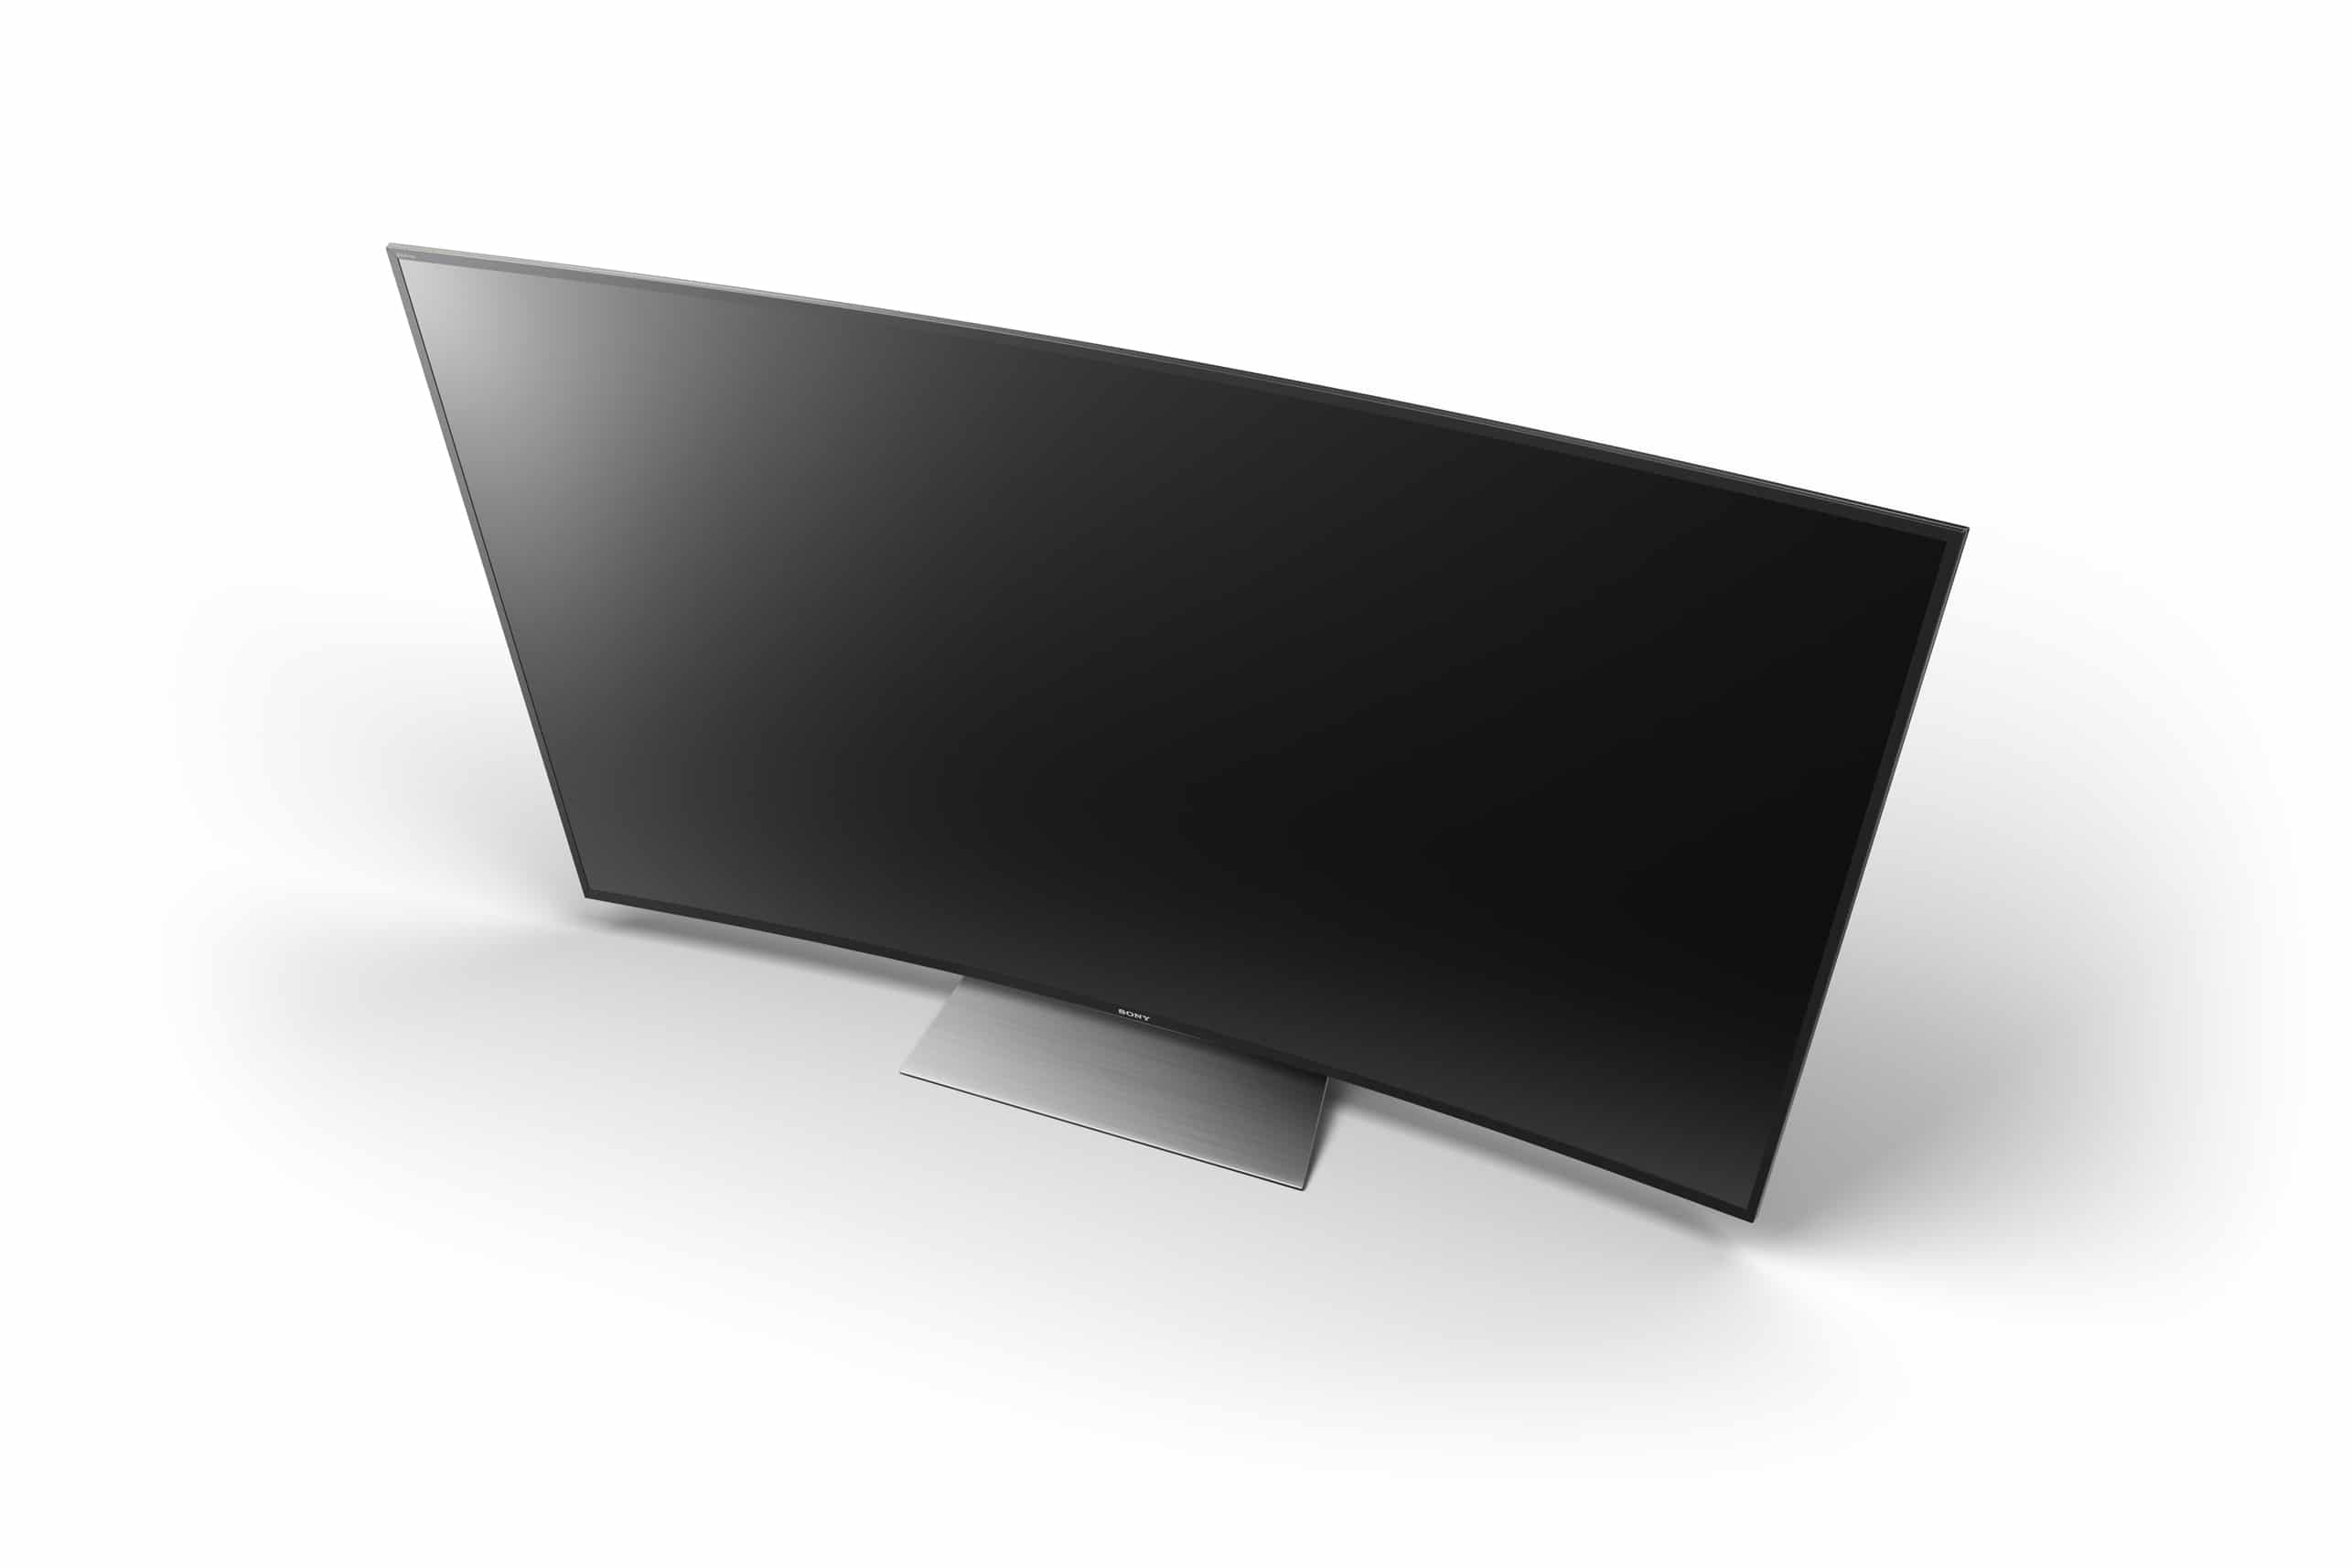 sony neue 4k hdr fernseher mit bis zu 85 zoll ces 2016. Black Bedroom Furniture Sets. Home Design Ideas